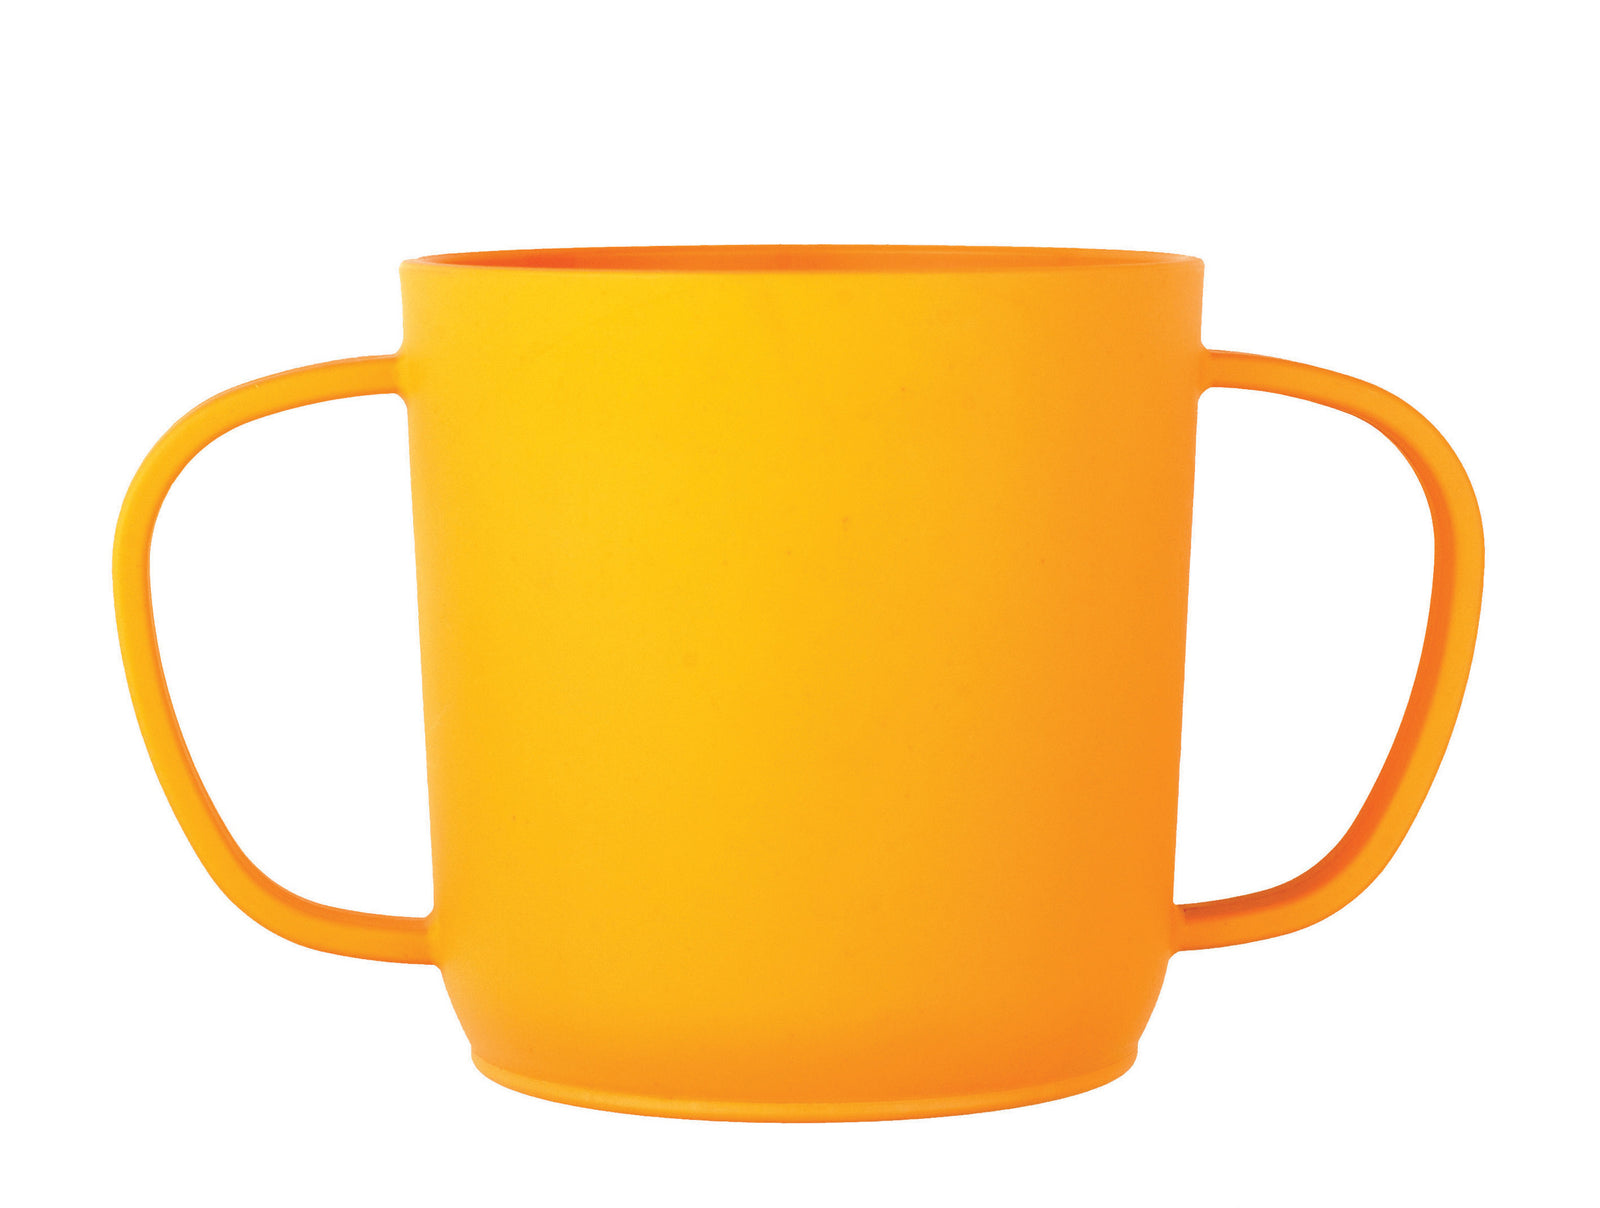 JJ Rabbit® CUPPIES® transitional training cups in Rabbit Orange Peel color (side view)